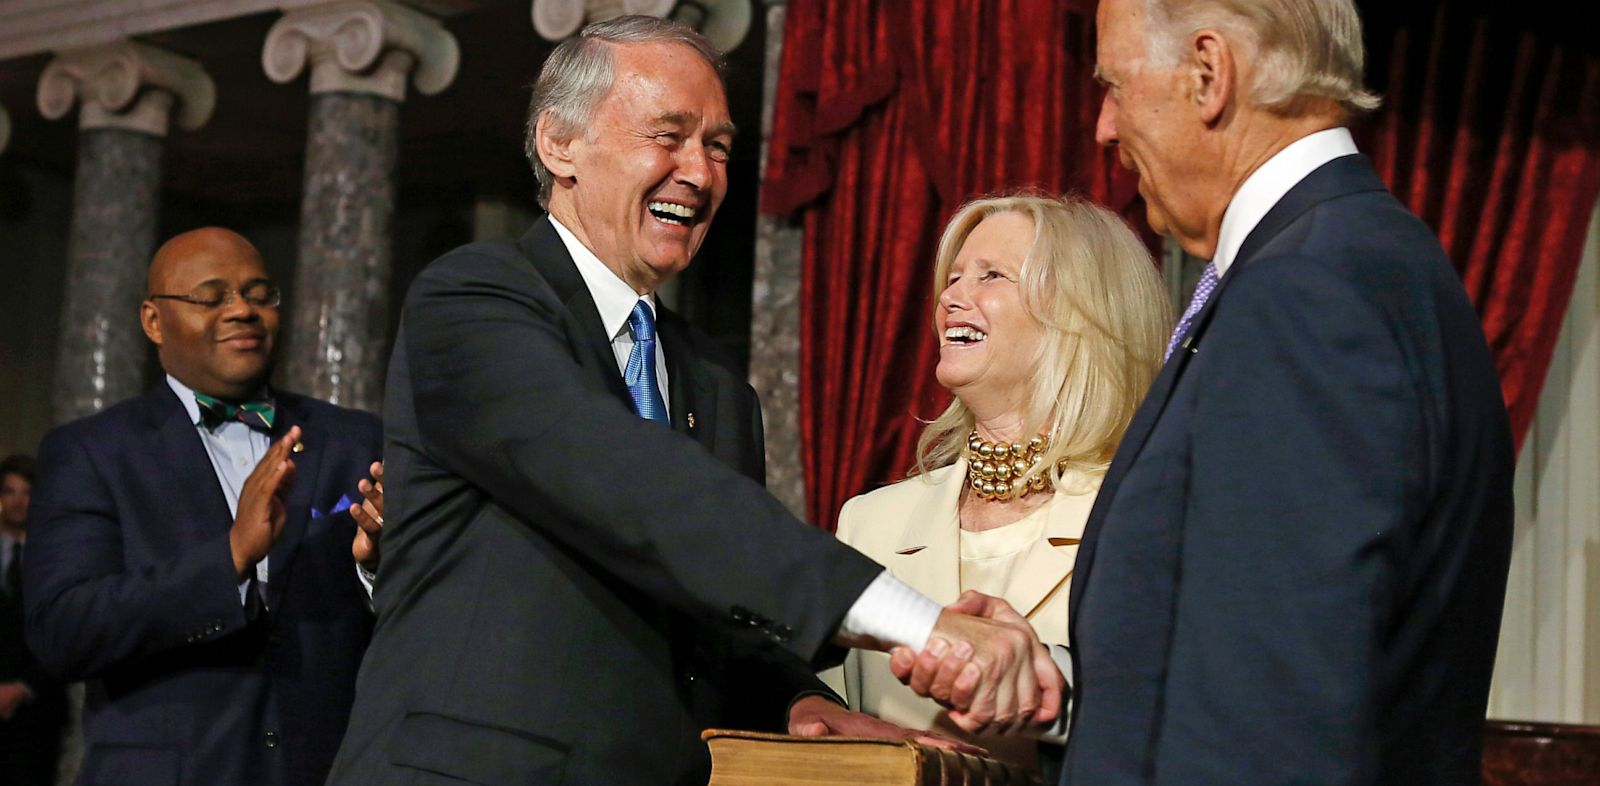 PHOTO: Sen. Ed Markey shakes hands with Vice President Joe Biden